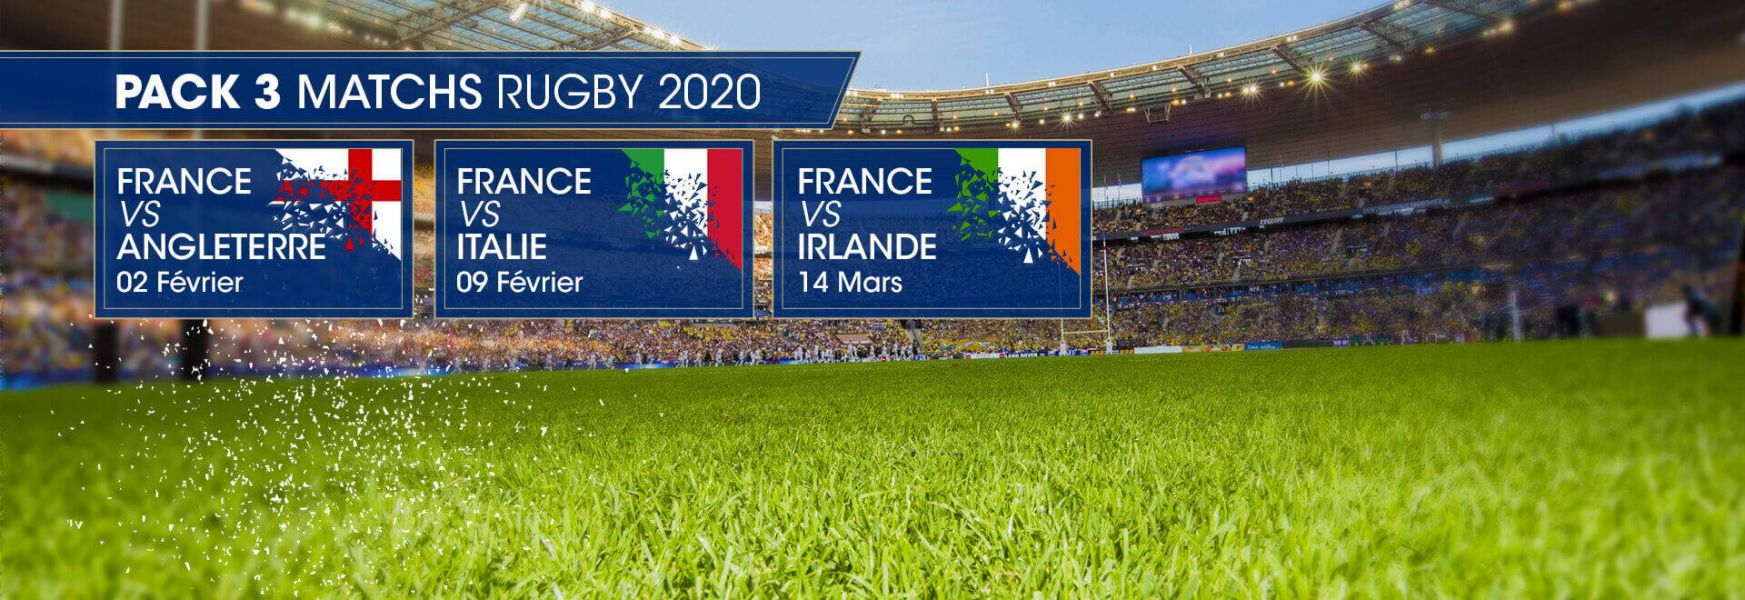 Pack 3 matchs rugby 2020 / France vs Angleterre / France vs Italie / France vs Irlande